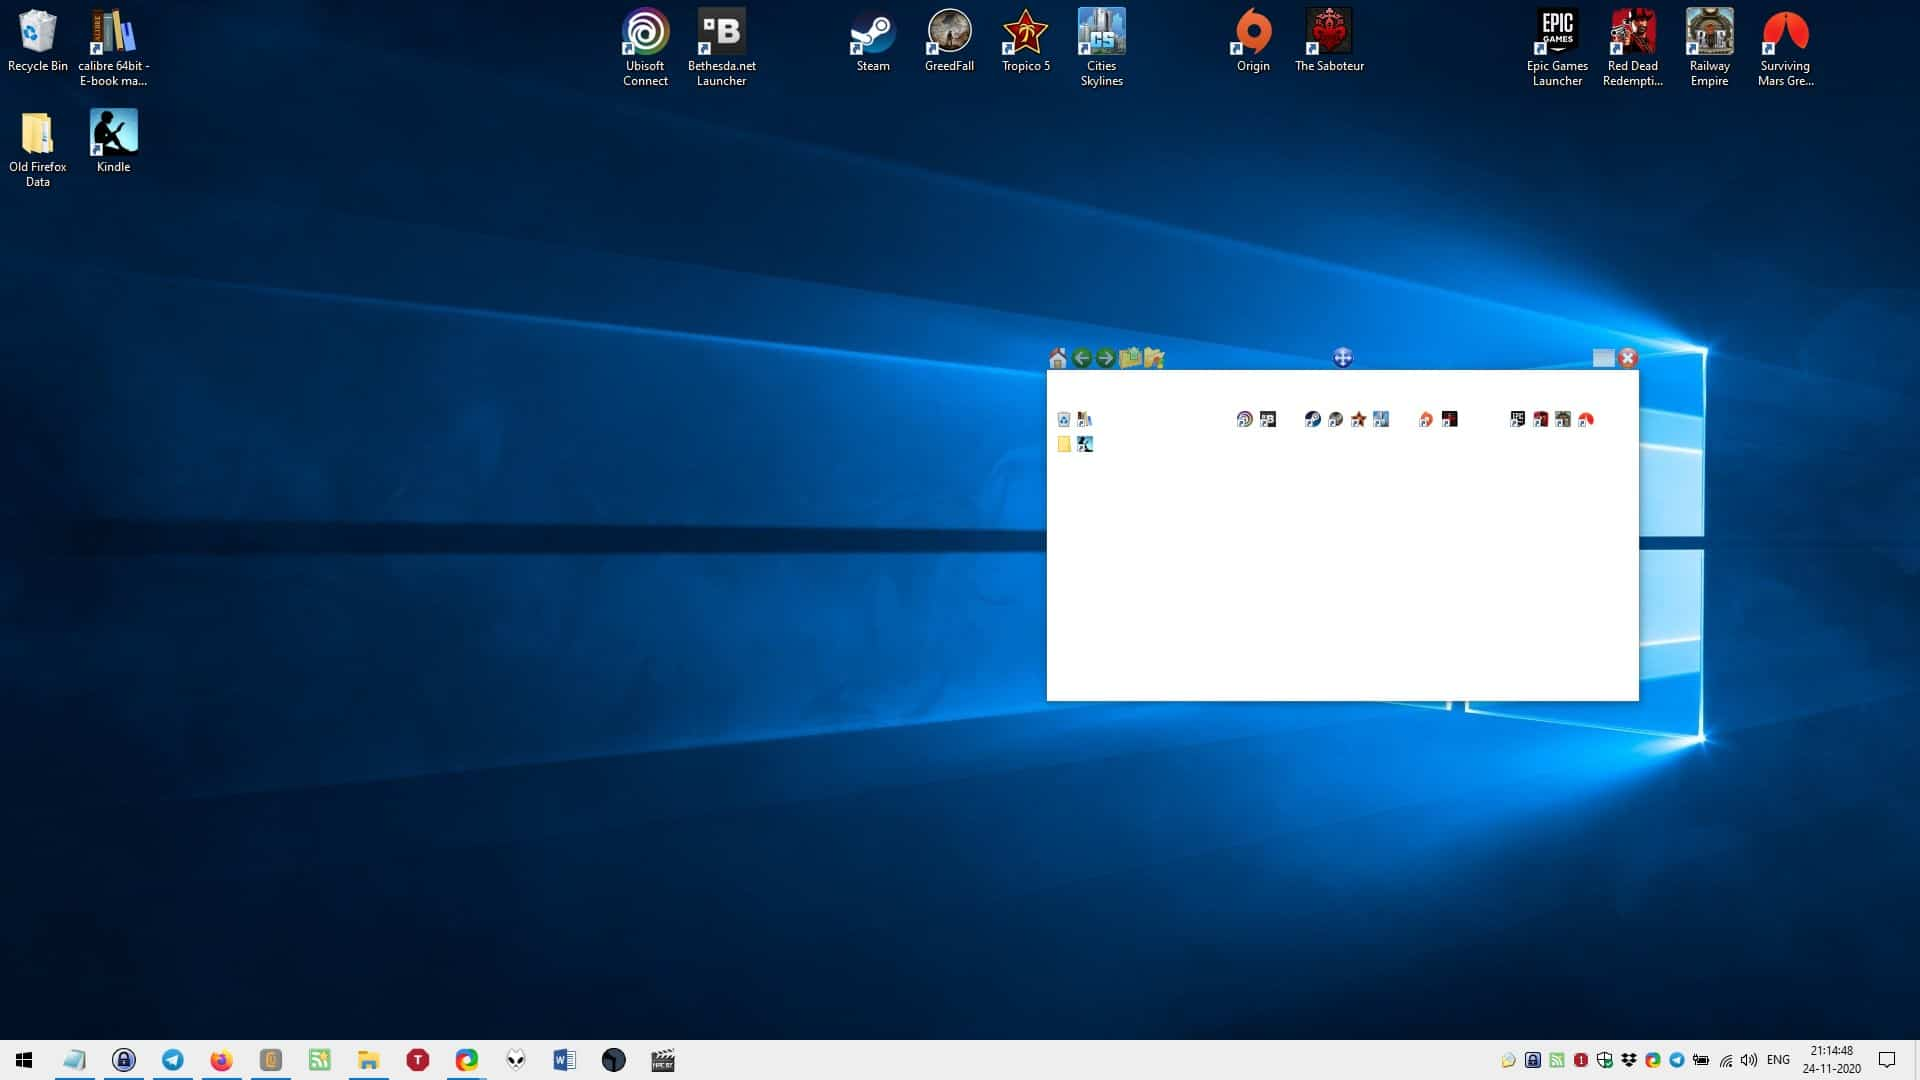 QuickWayToFolders provides a unique way to access your desktop shortcuts and folders